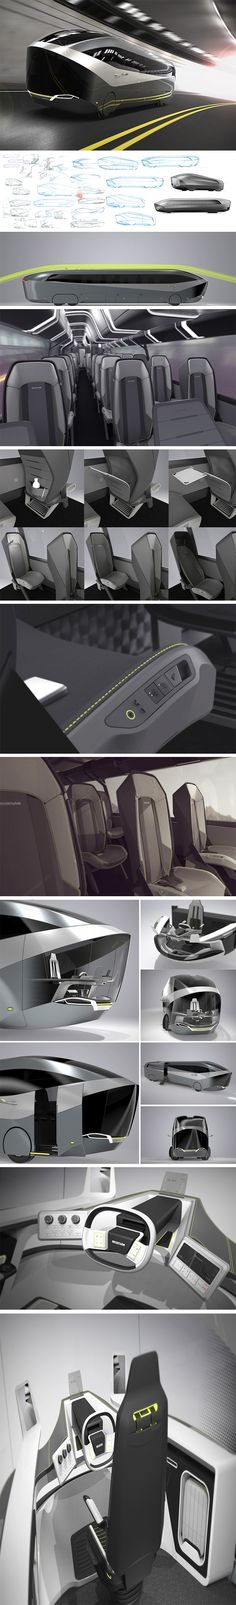 There seems to be a lot of hype and talk about personal autonomous vehicles, and rightly so – but now comes the time for autonomous public transport. And one of the more exciting concepts of late is the Neoplan Aero 24-7. Aero 24-7 is an aerodynamic high-efficiency coach that travels non-stop during night and day. The integrated autonomous driving mode lets the driver take his break while driving.